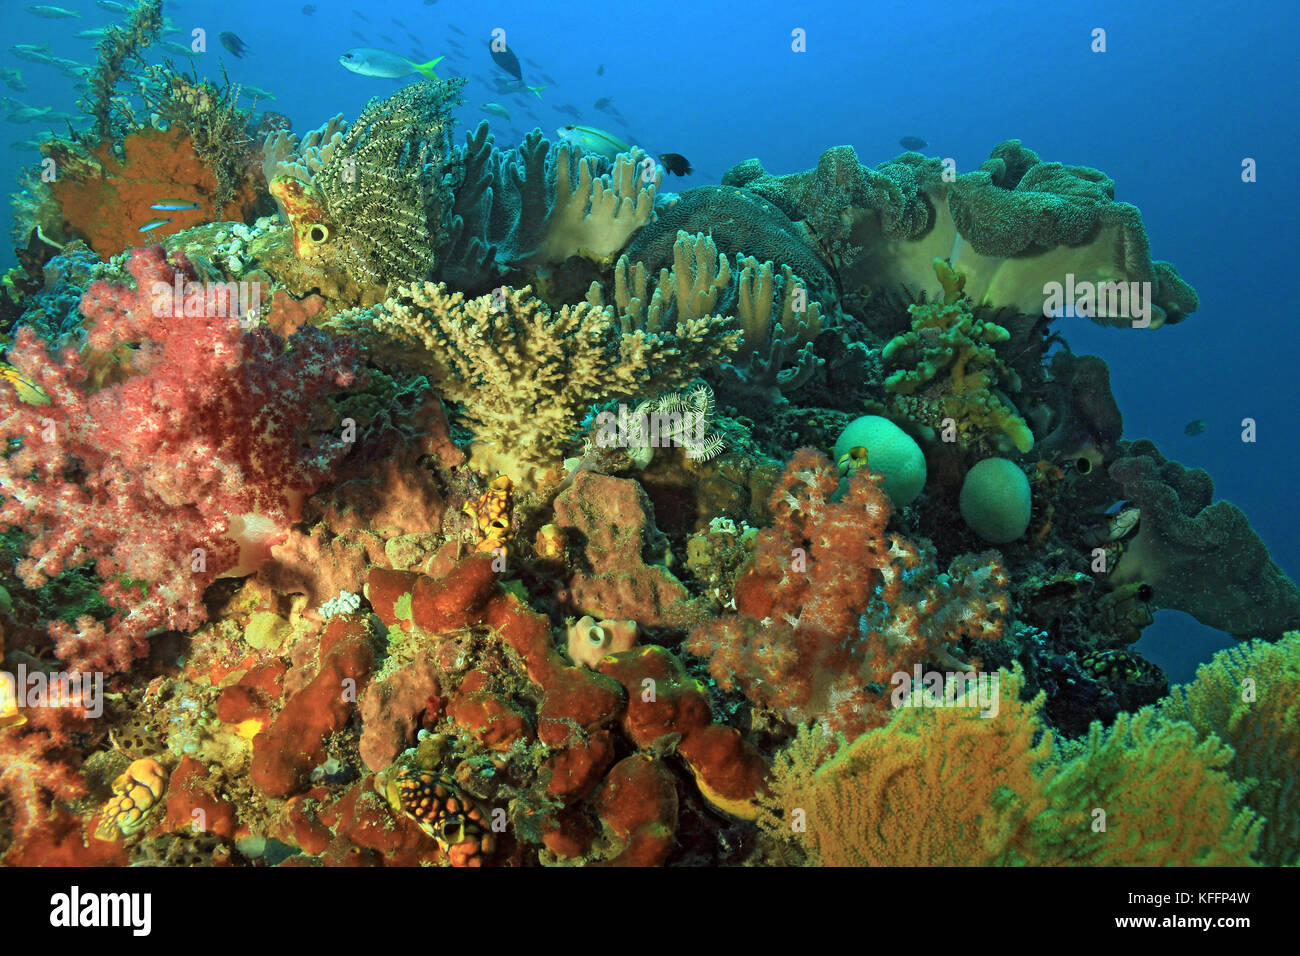 Colorful Coral Reef against Blue Water. Dampier Strait, Raja Ampat, Indonesia - Stock Image